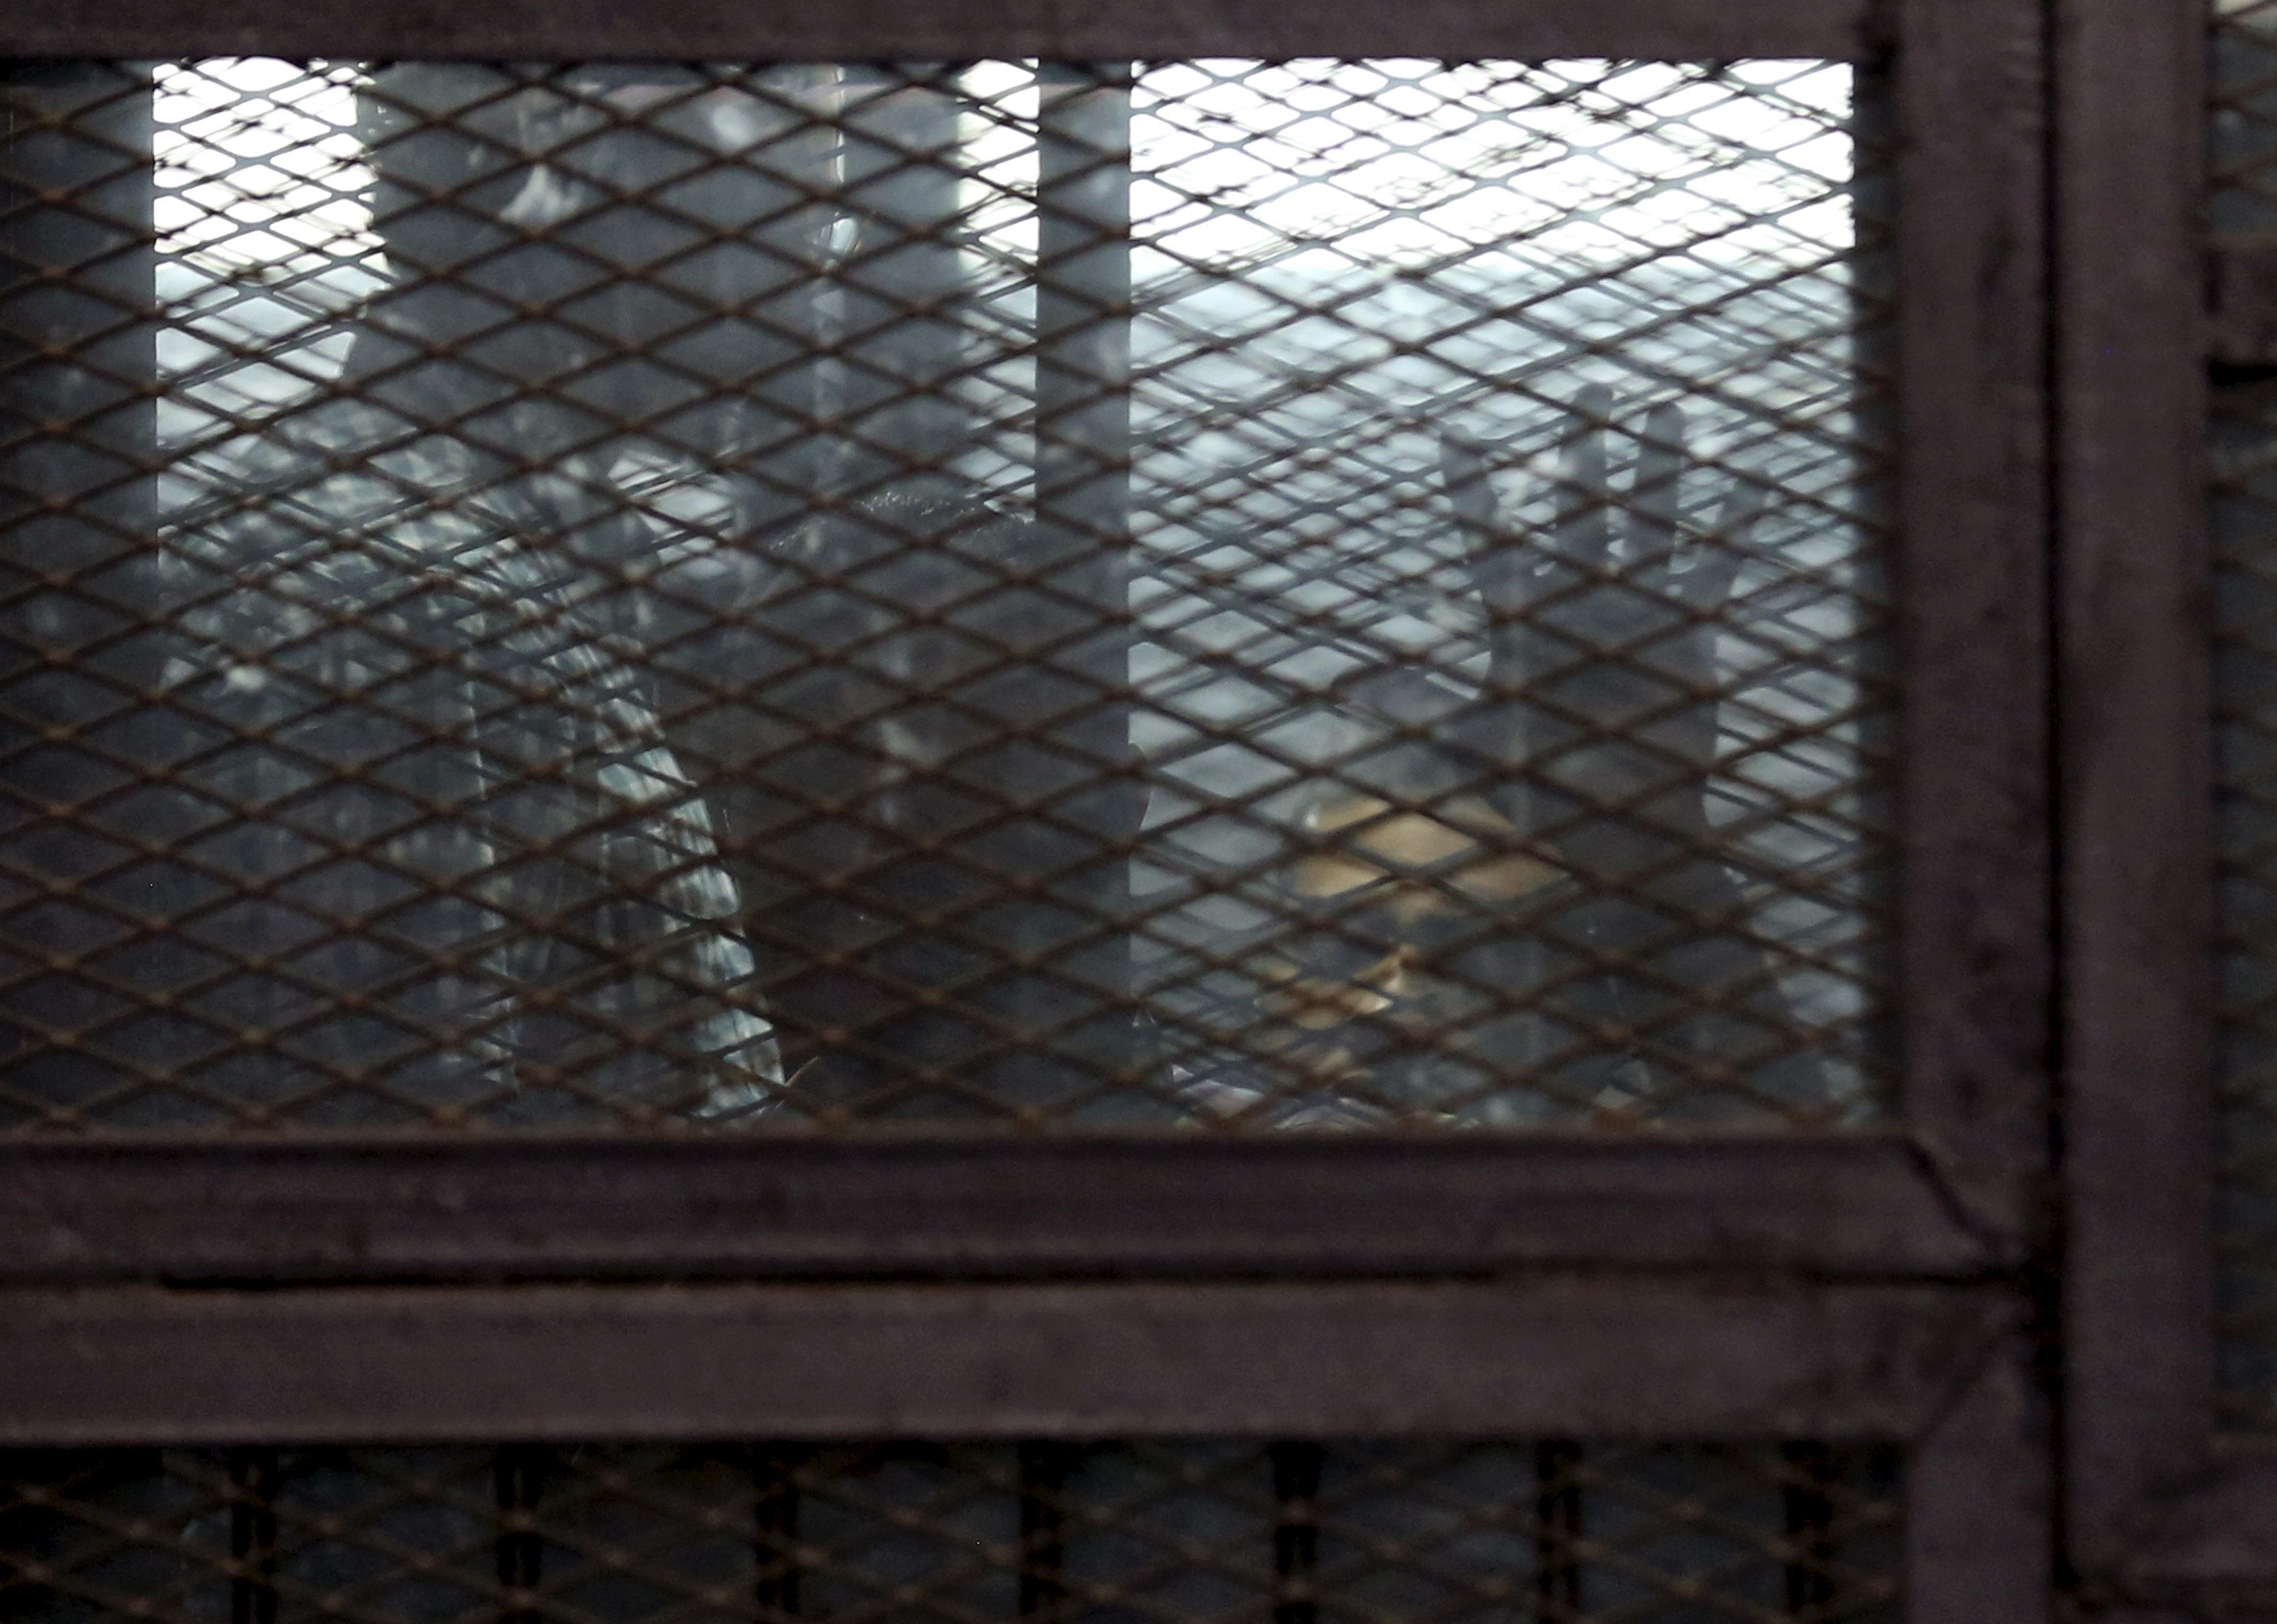 Al Jazeera television journalists Mohamed Fahmy and  Baher Mohamed are seen behind bars before hearing the verdict at a court in Cairo, Egypt, August 29, 2015. An Egyptian court sentenced three Al Jazeera TV journalists to three years in prison on Saturday for operating without a press licence and broadcasting material harmful to Egypt, a case that has triggered an international outcry. The verdict in a retrial was issued against Mohamed Fahmy, a naturalised Canadian who has given up his Egyptian citizenship, Baher Mohamed, an Egyptian, and Peter Greste, an Australian who was deported in February. REUTERS/Asmaa Waguih